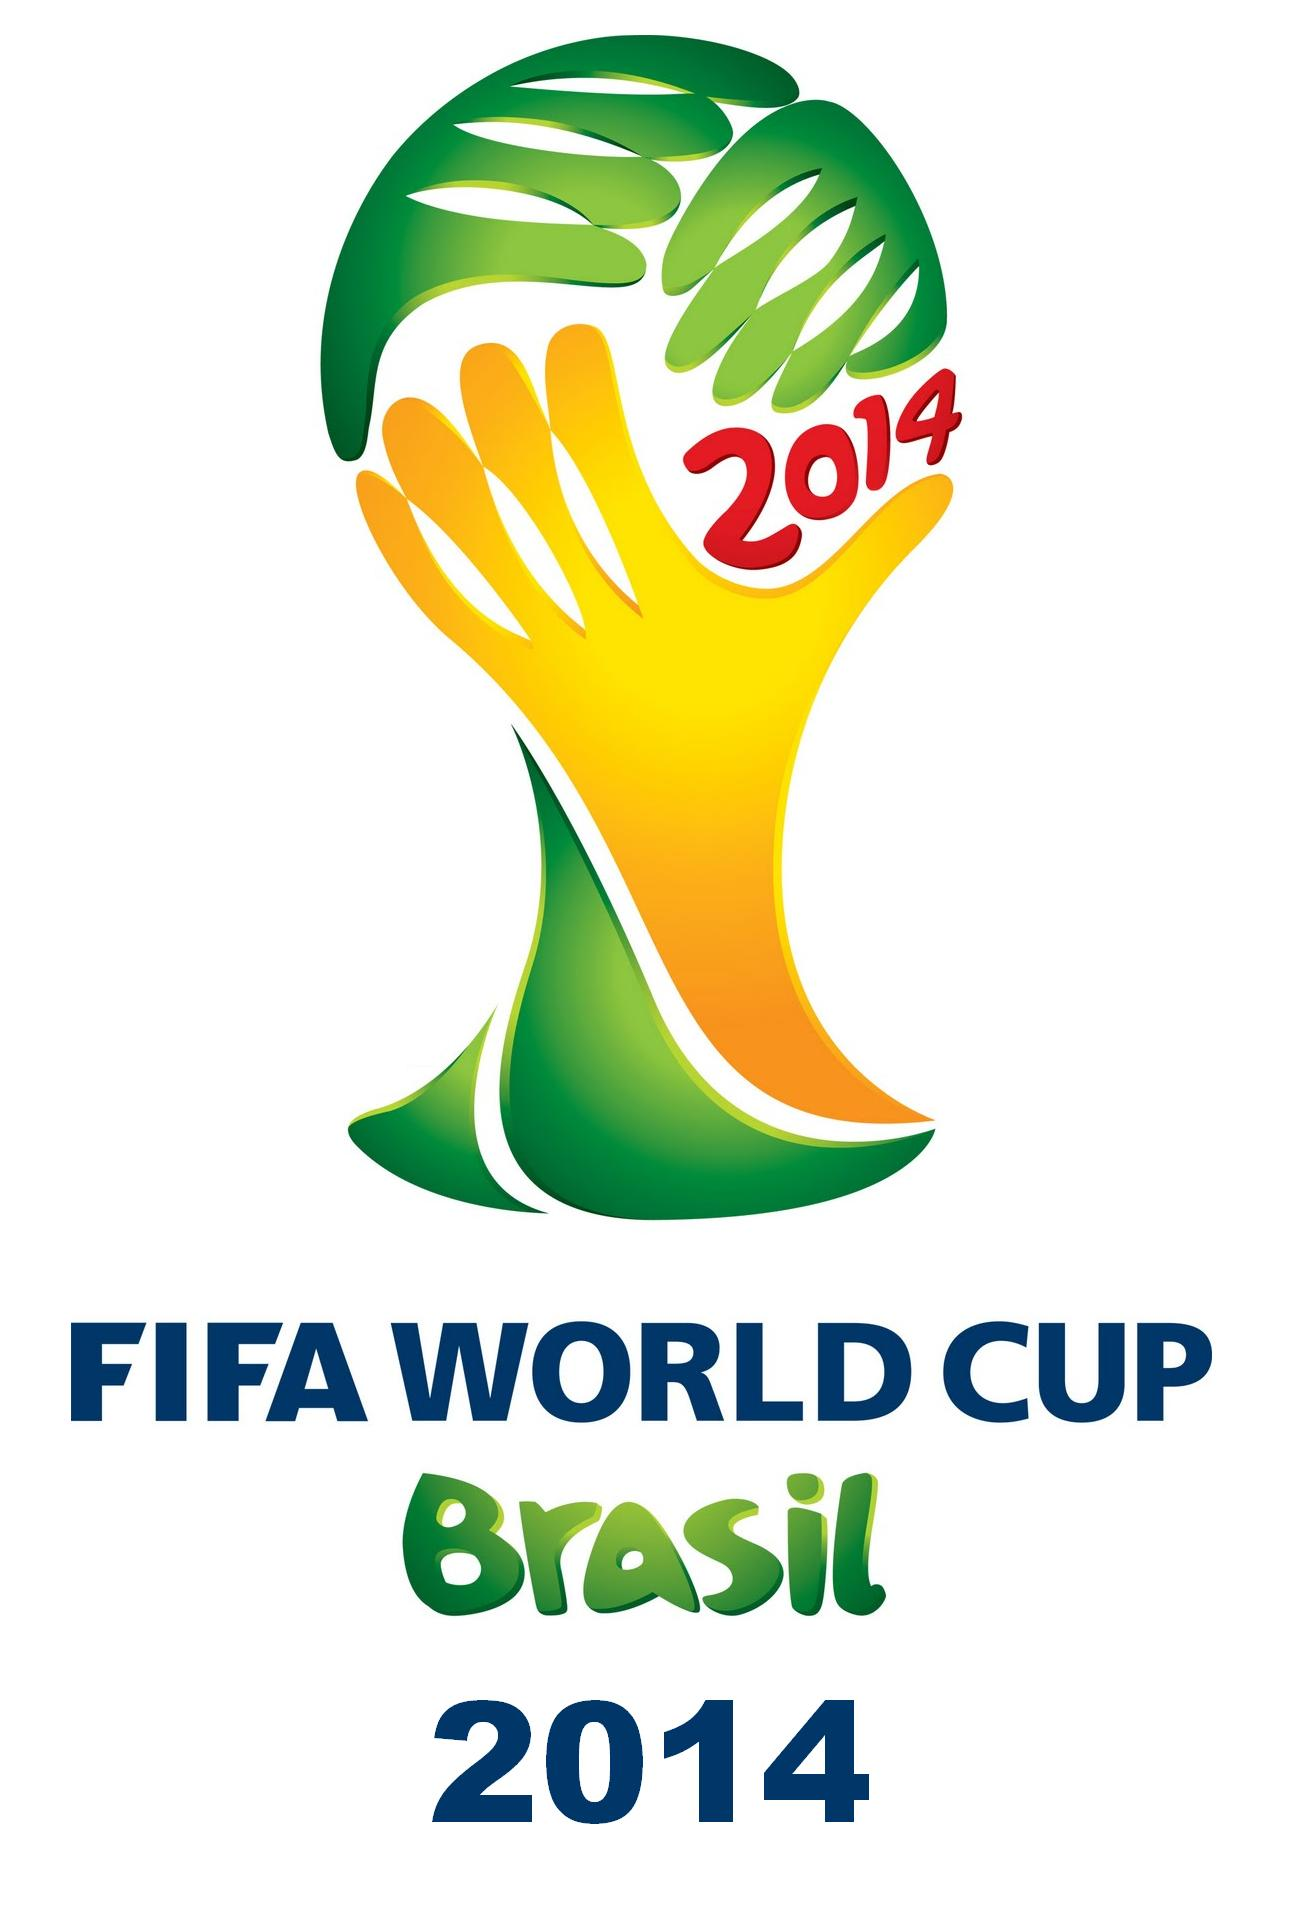 world cup 2014 in brazil informative Brazil world cup 2014: here you can play brazil world cup 2014 - brazil world cup 2014 is one of our selected sports games play now, and have fun.